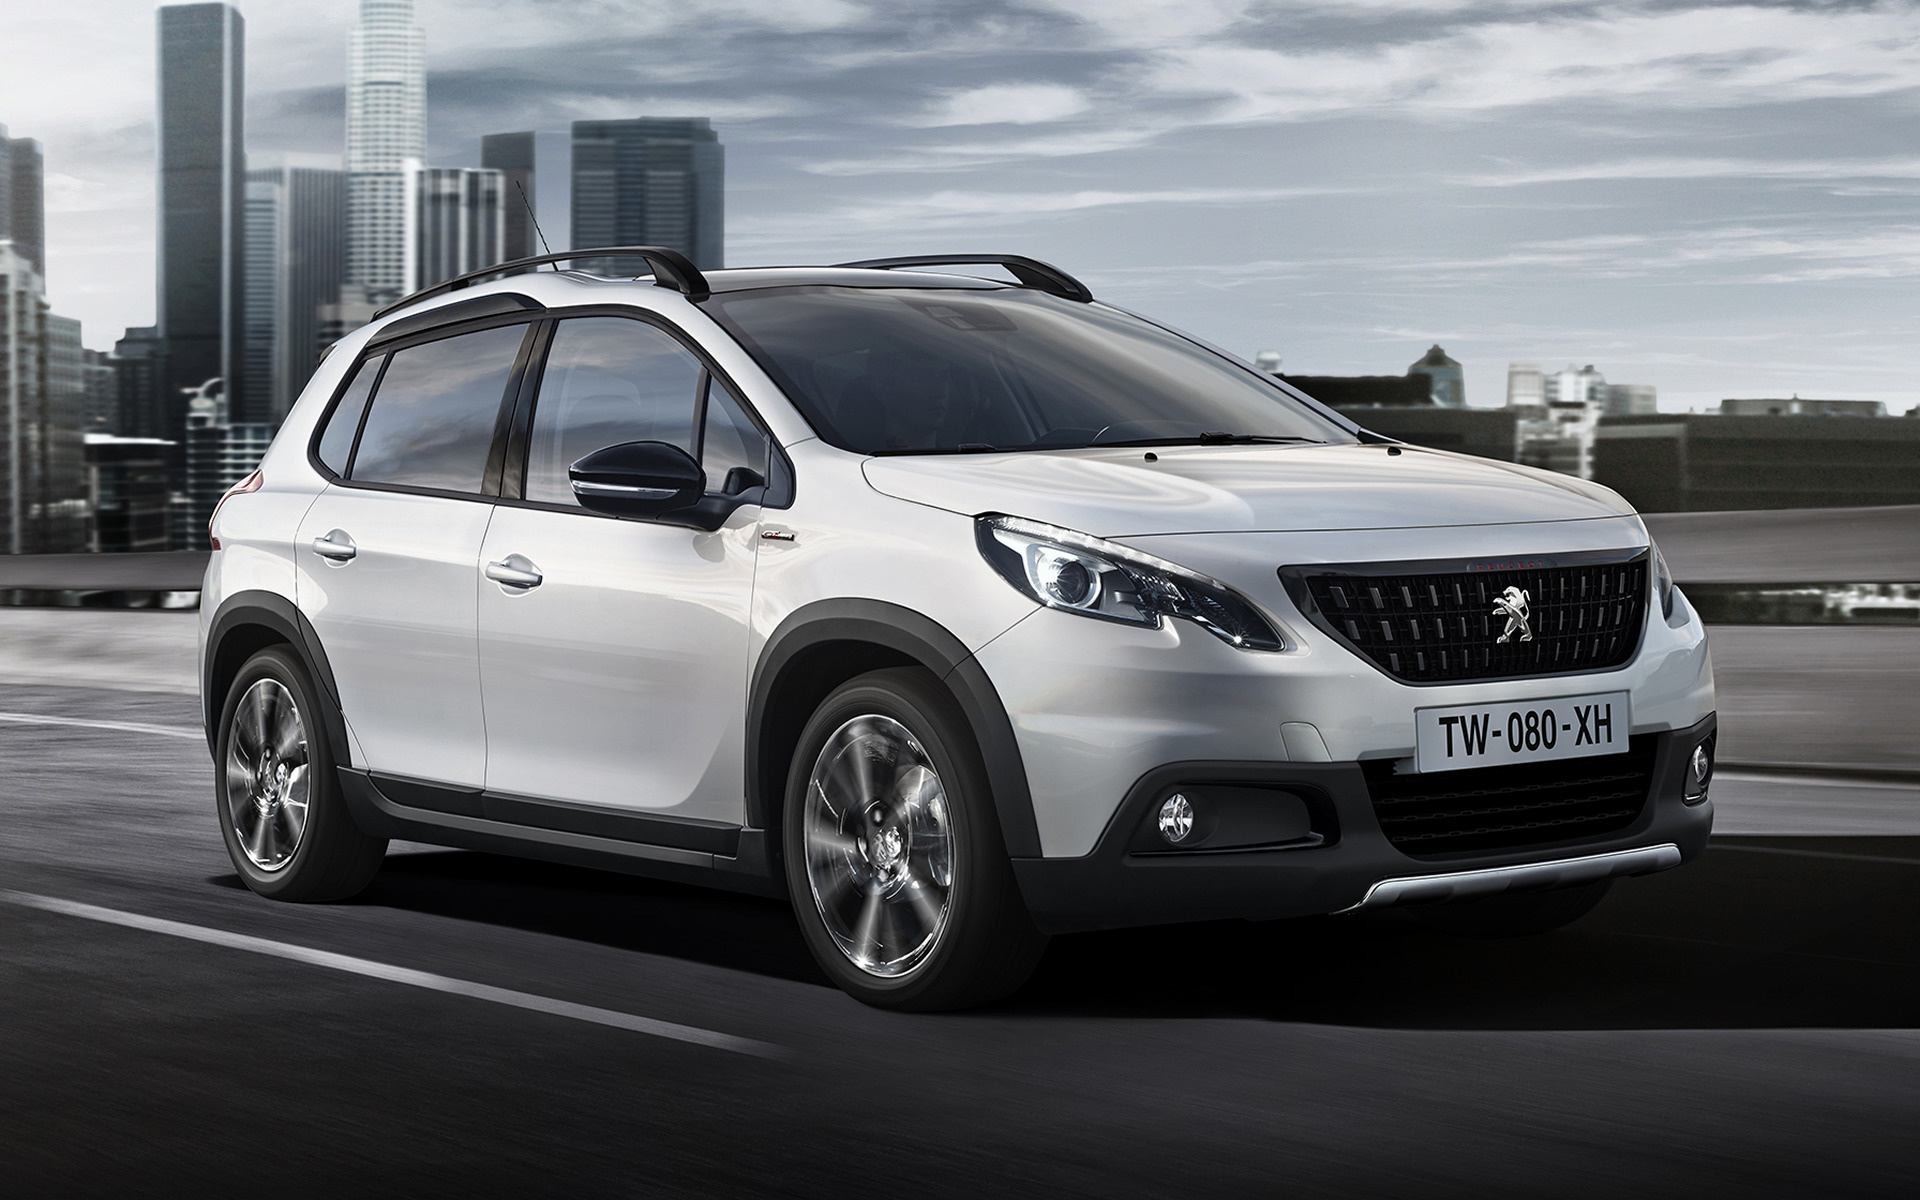 2016 Peugeot 2008 Gt Line Wallpapers And Hd Images Car